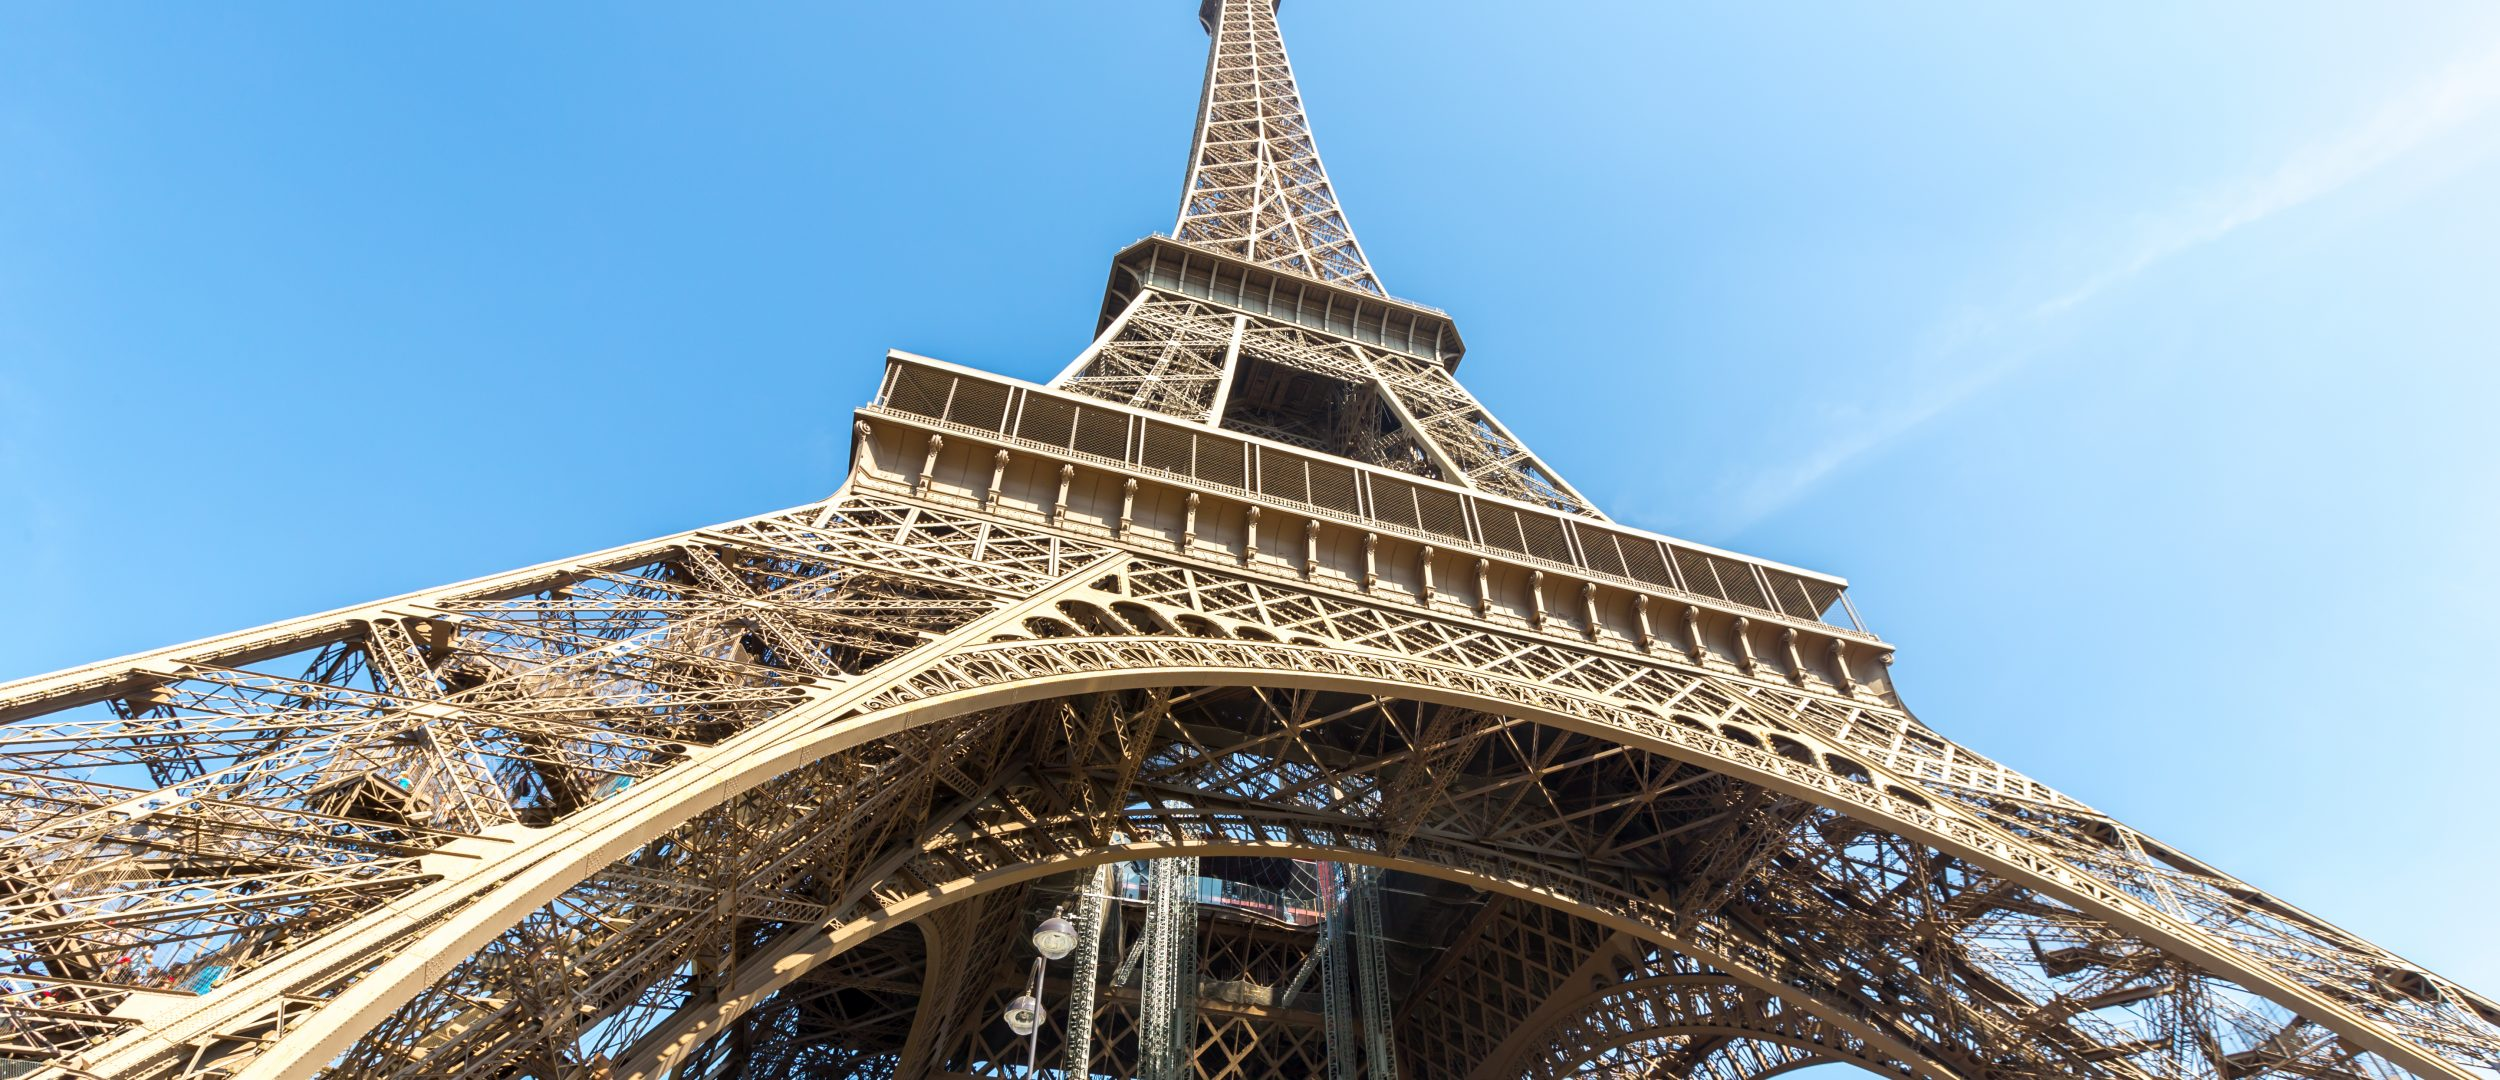 Eiffel Tower with blue sky summer, Paris France